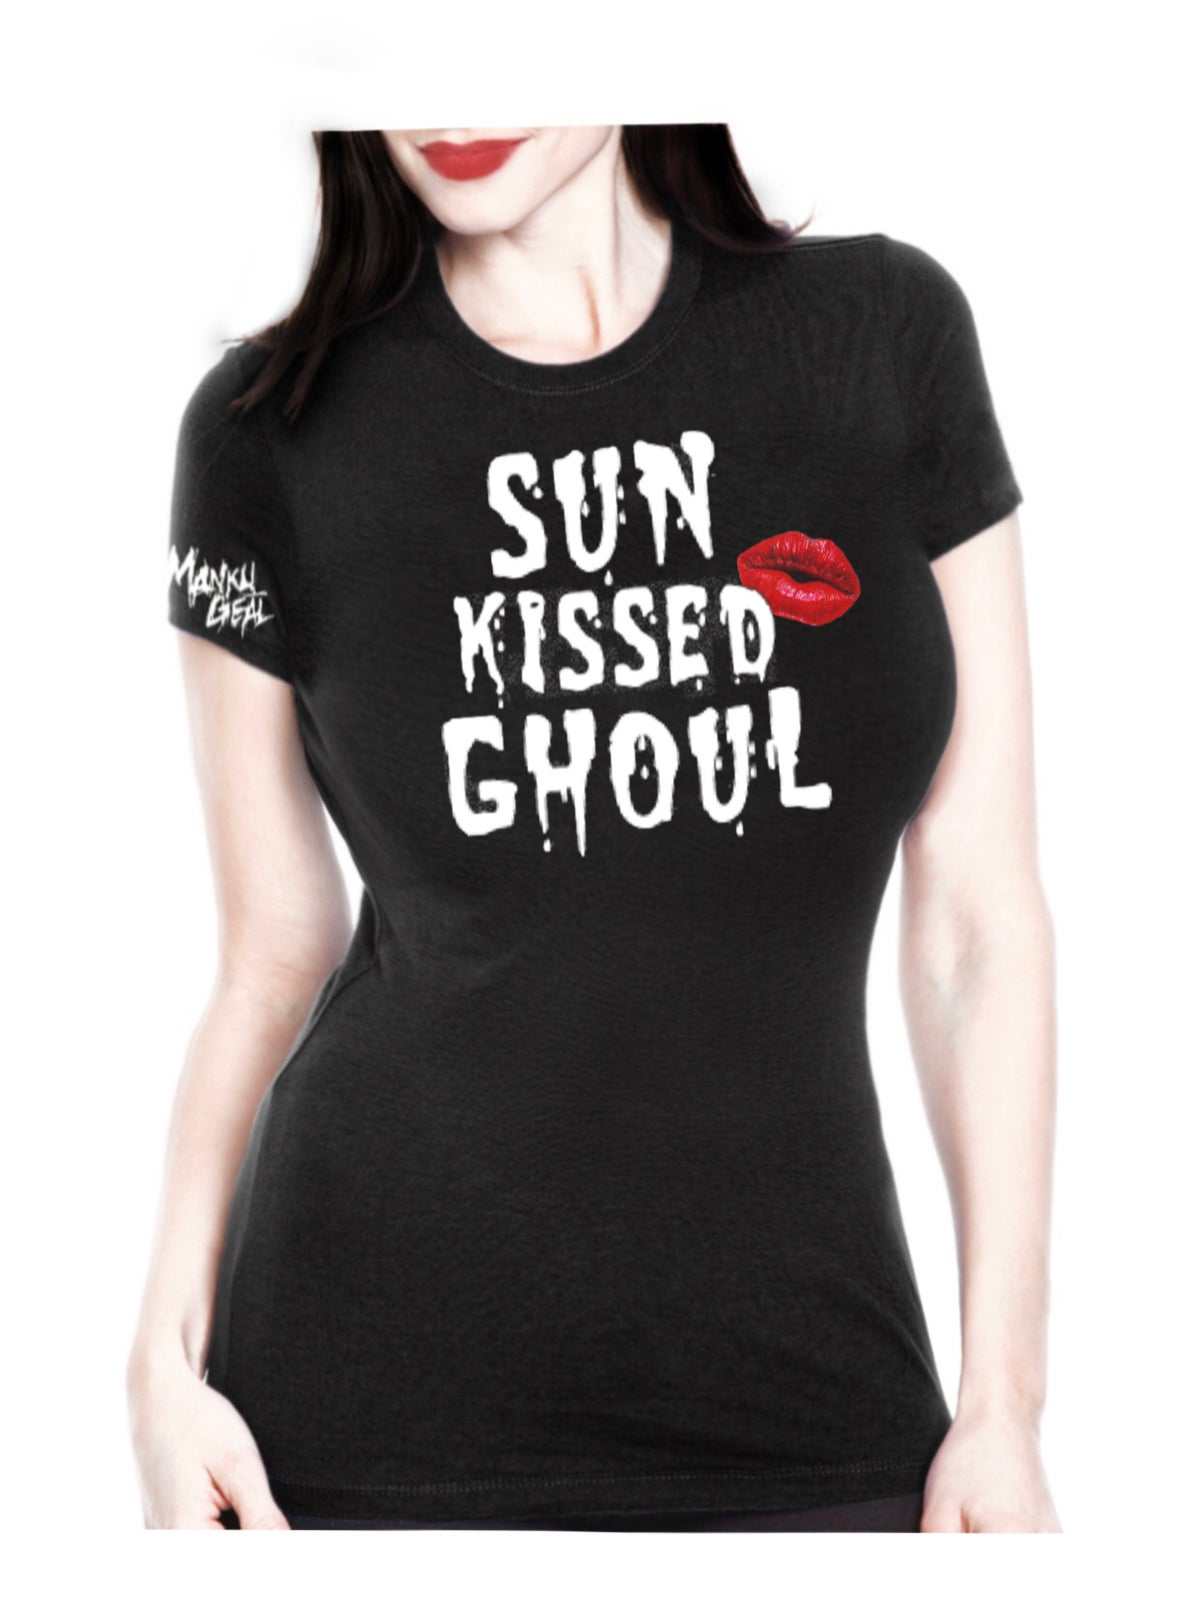 Image of Sun Kissed Ghoul Women's Tee